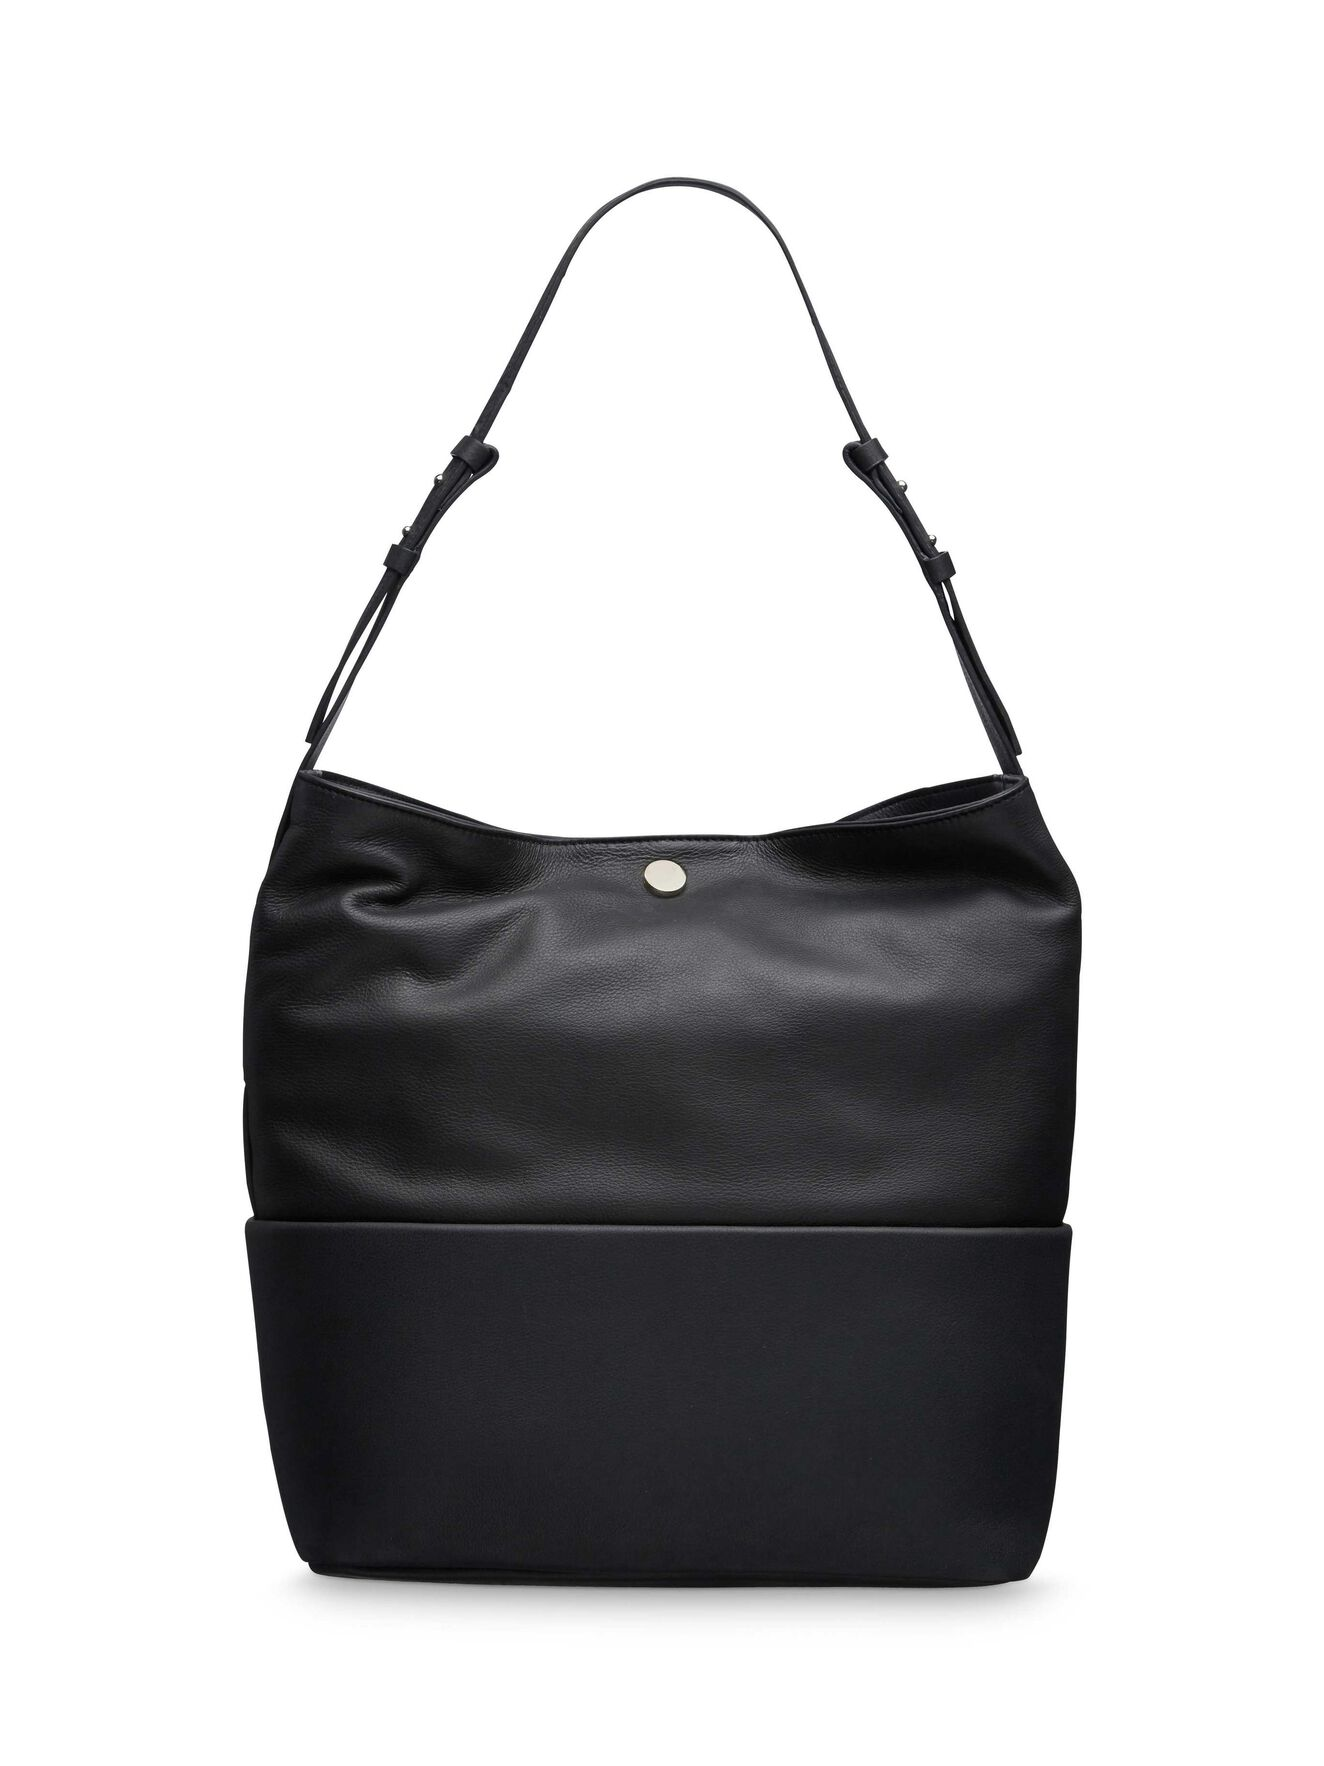 Andrea bag  in Black from Tiger of Sweden